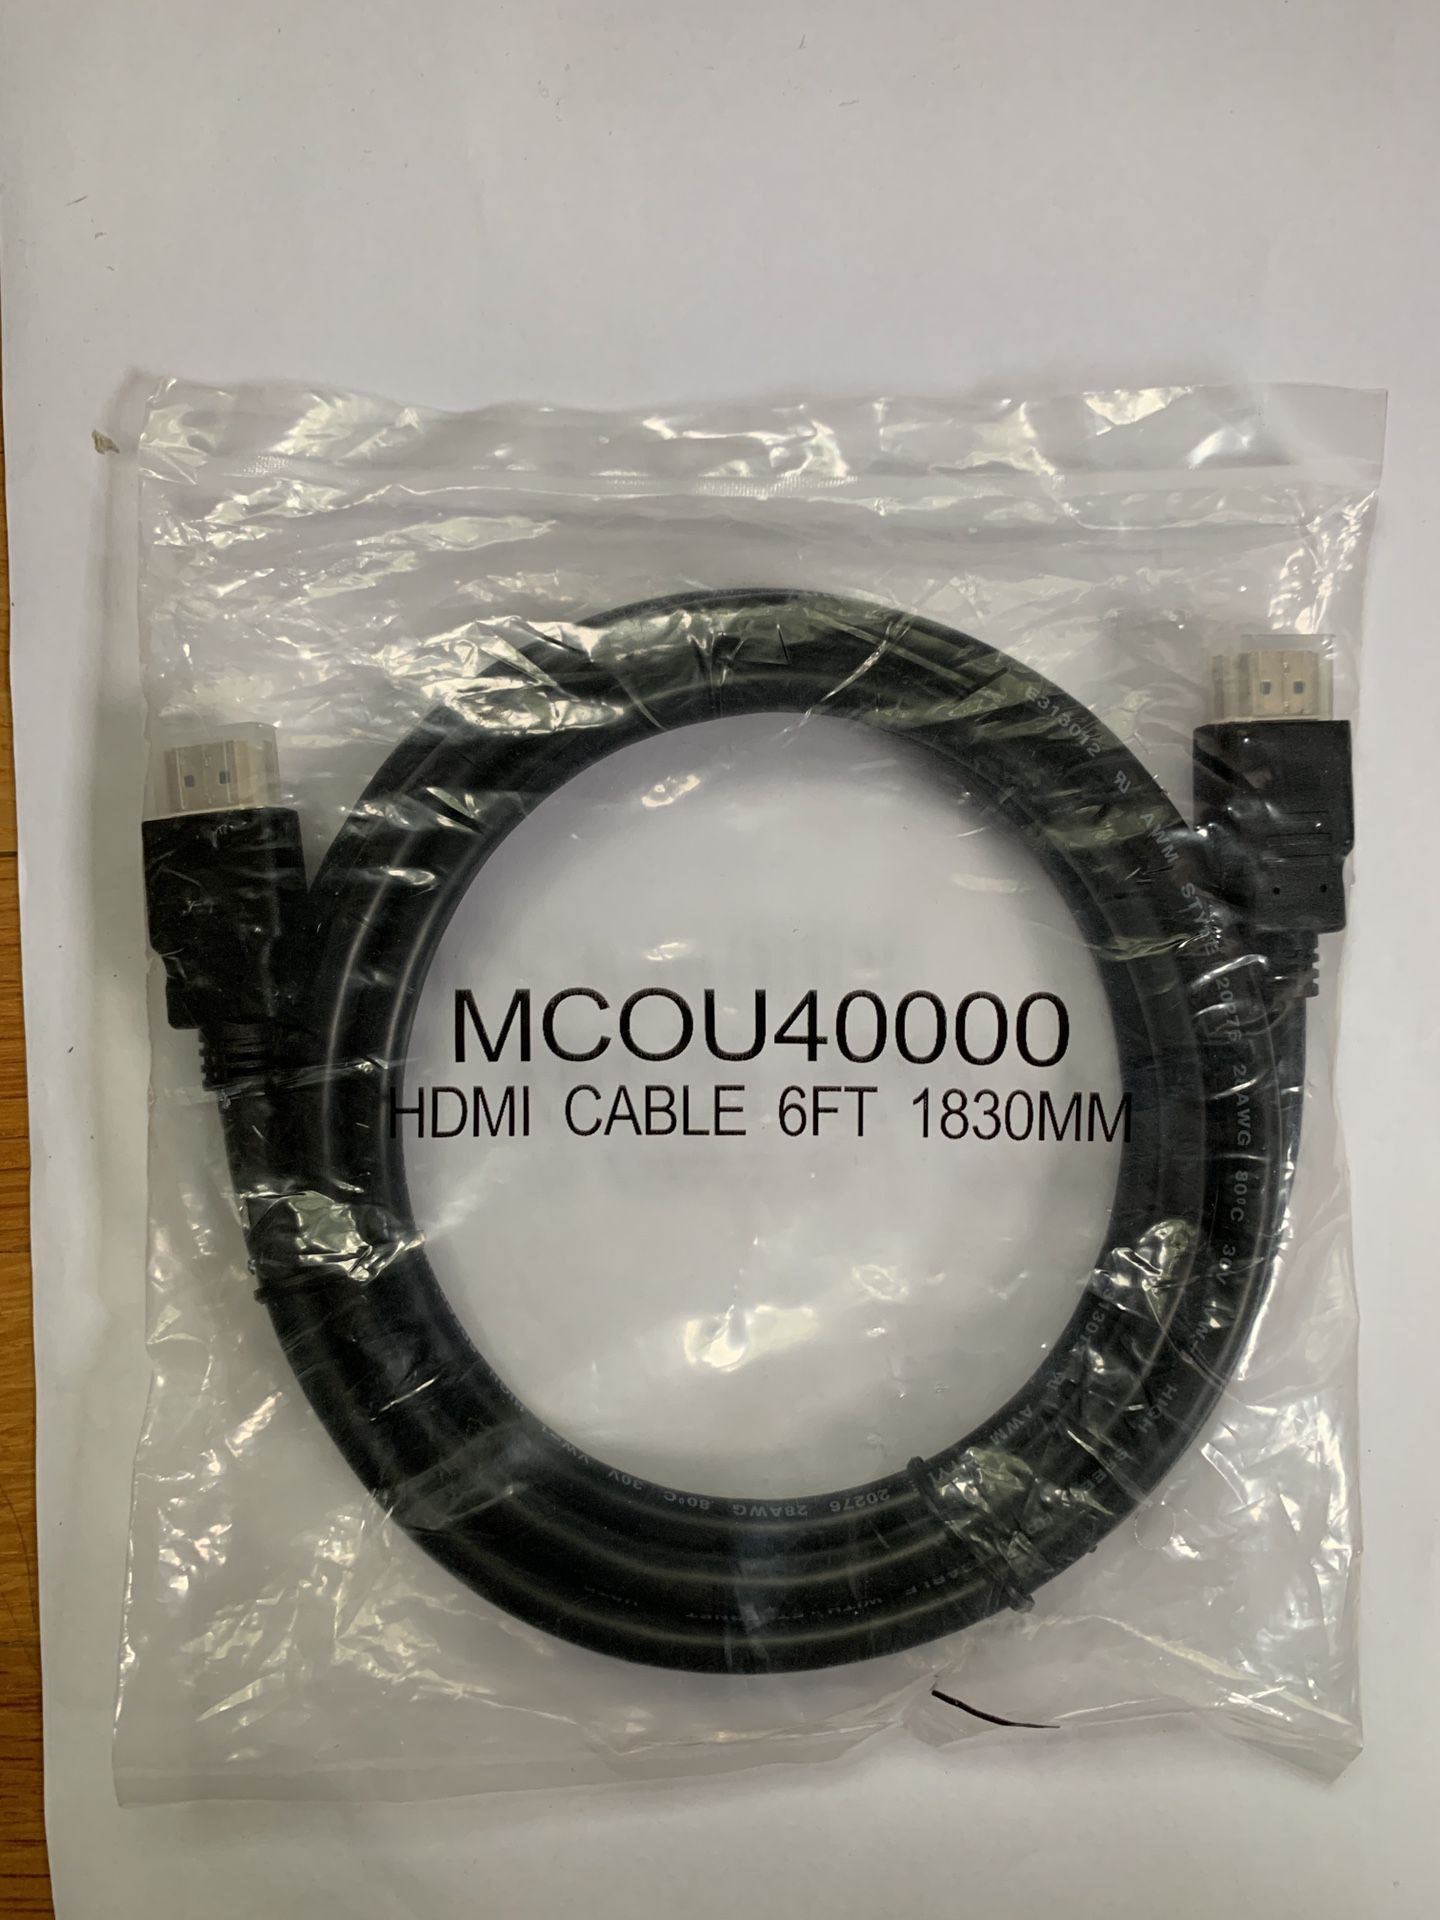 New MCOU40000 high speed HDMI cable with Ethernet in original sealed packaging